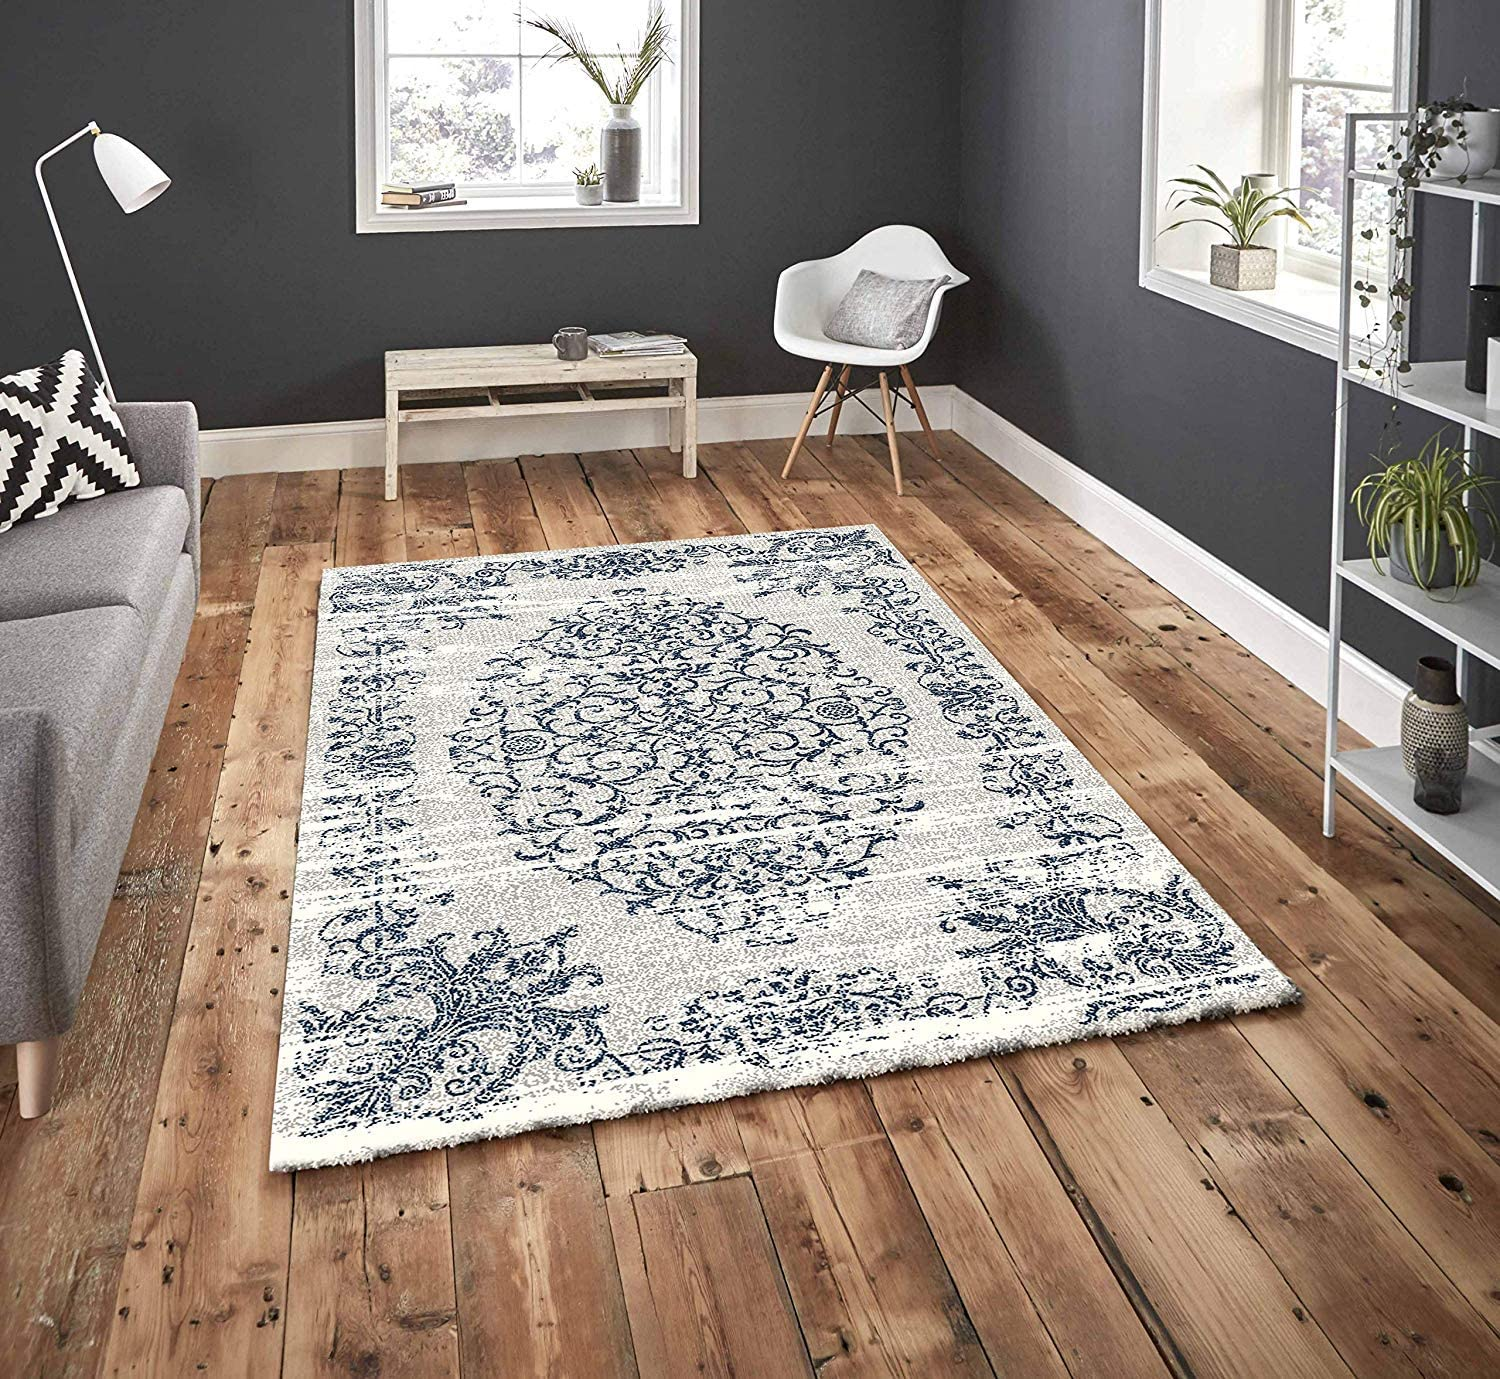 Pyramid Collection Low Pile Soft Plush Abstract Modern Non Shedding Living Room Area Rug (8x10, P07-CREAM&Black)